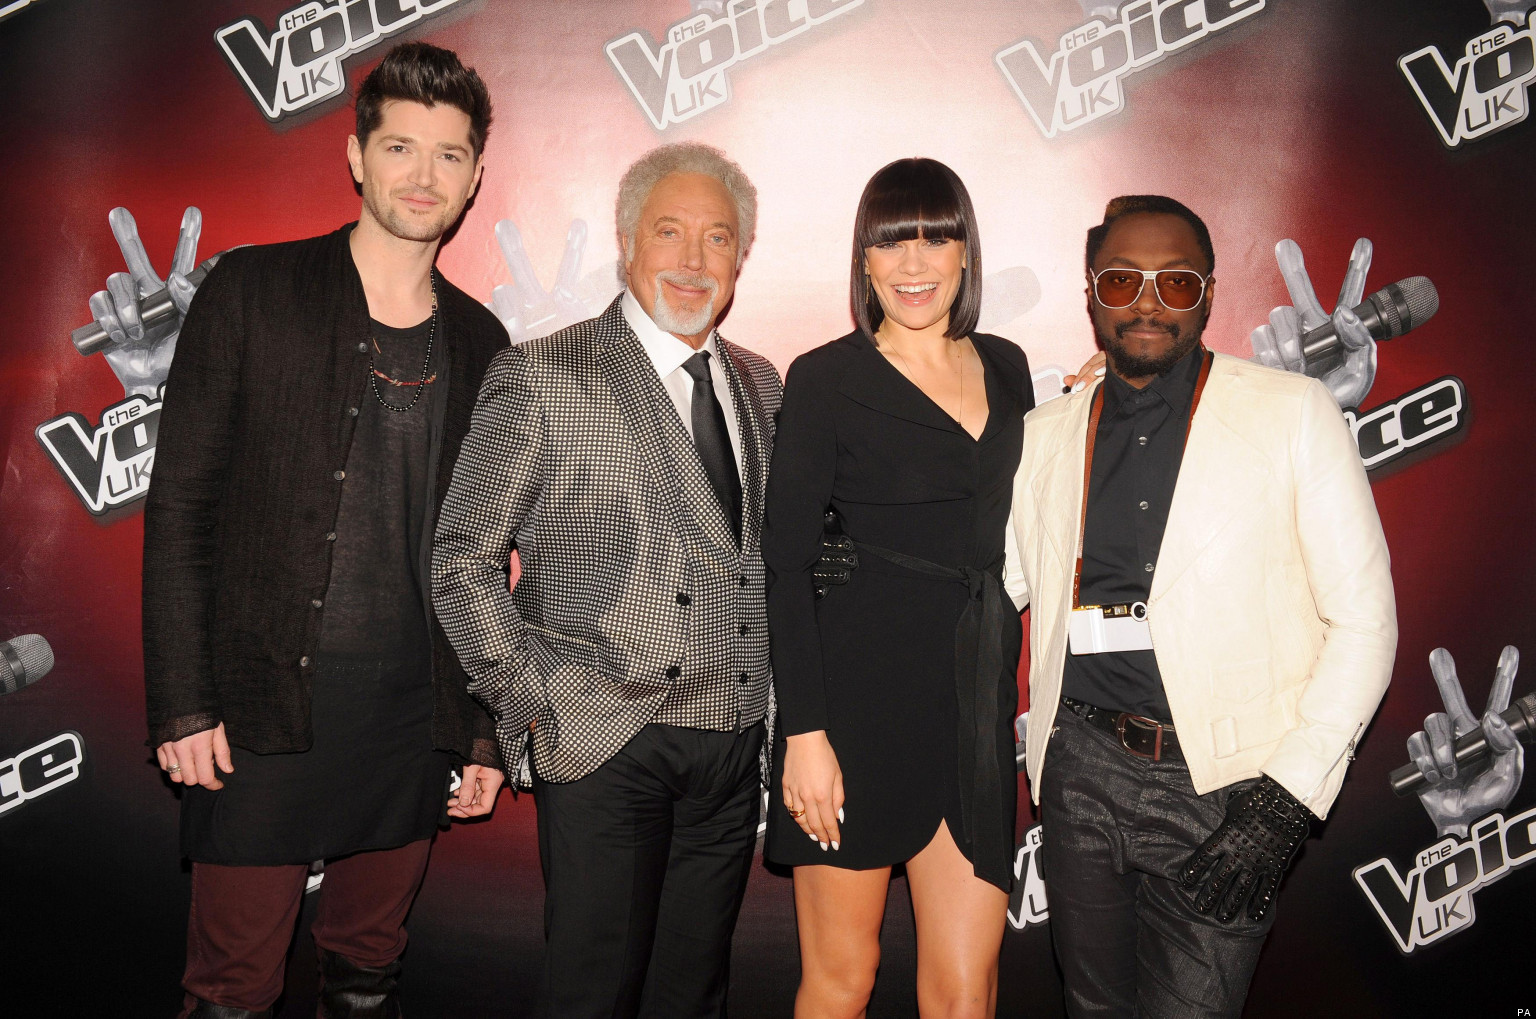 THE-VOICE-facebook jpgThe Voice Judges 2013 Names